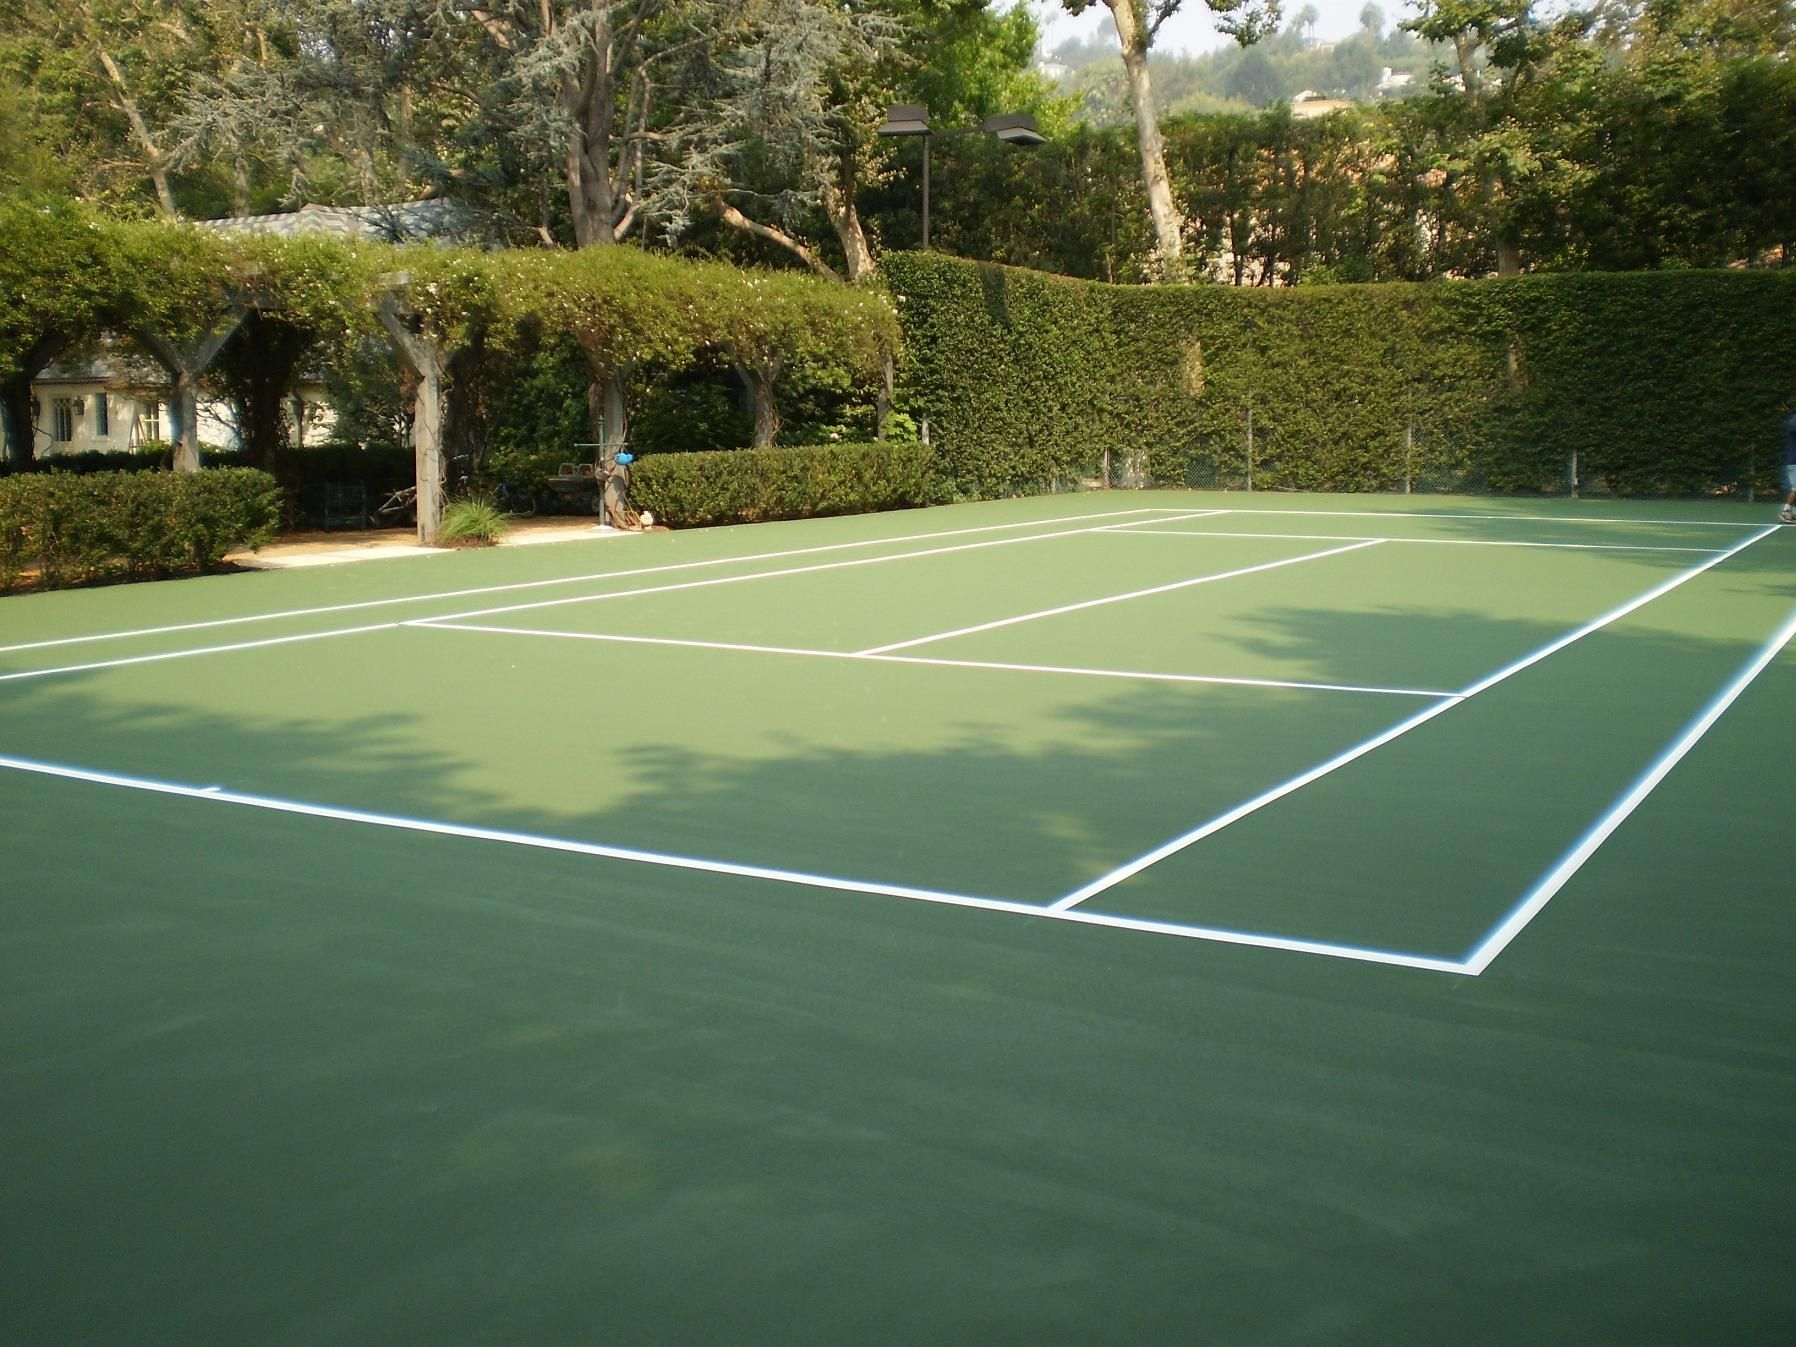 Attrayant This Secret Get Away Backyard Tennis Court Is A Fun Way To Get Your Game On